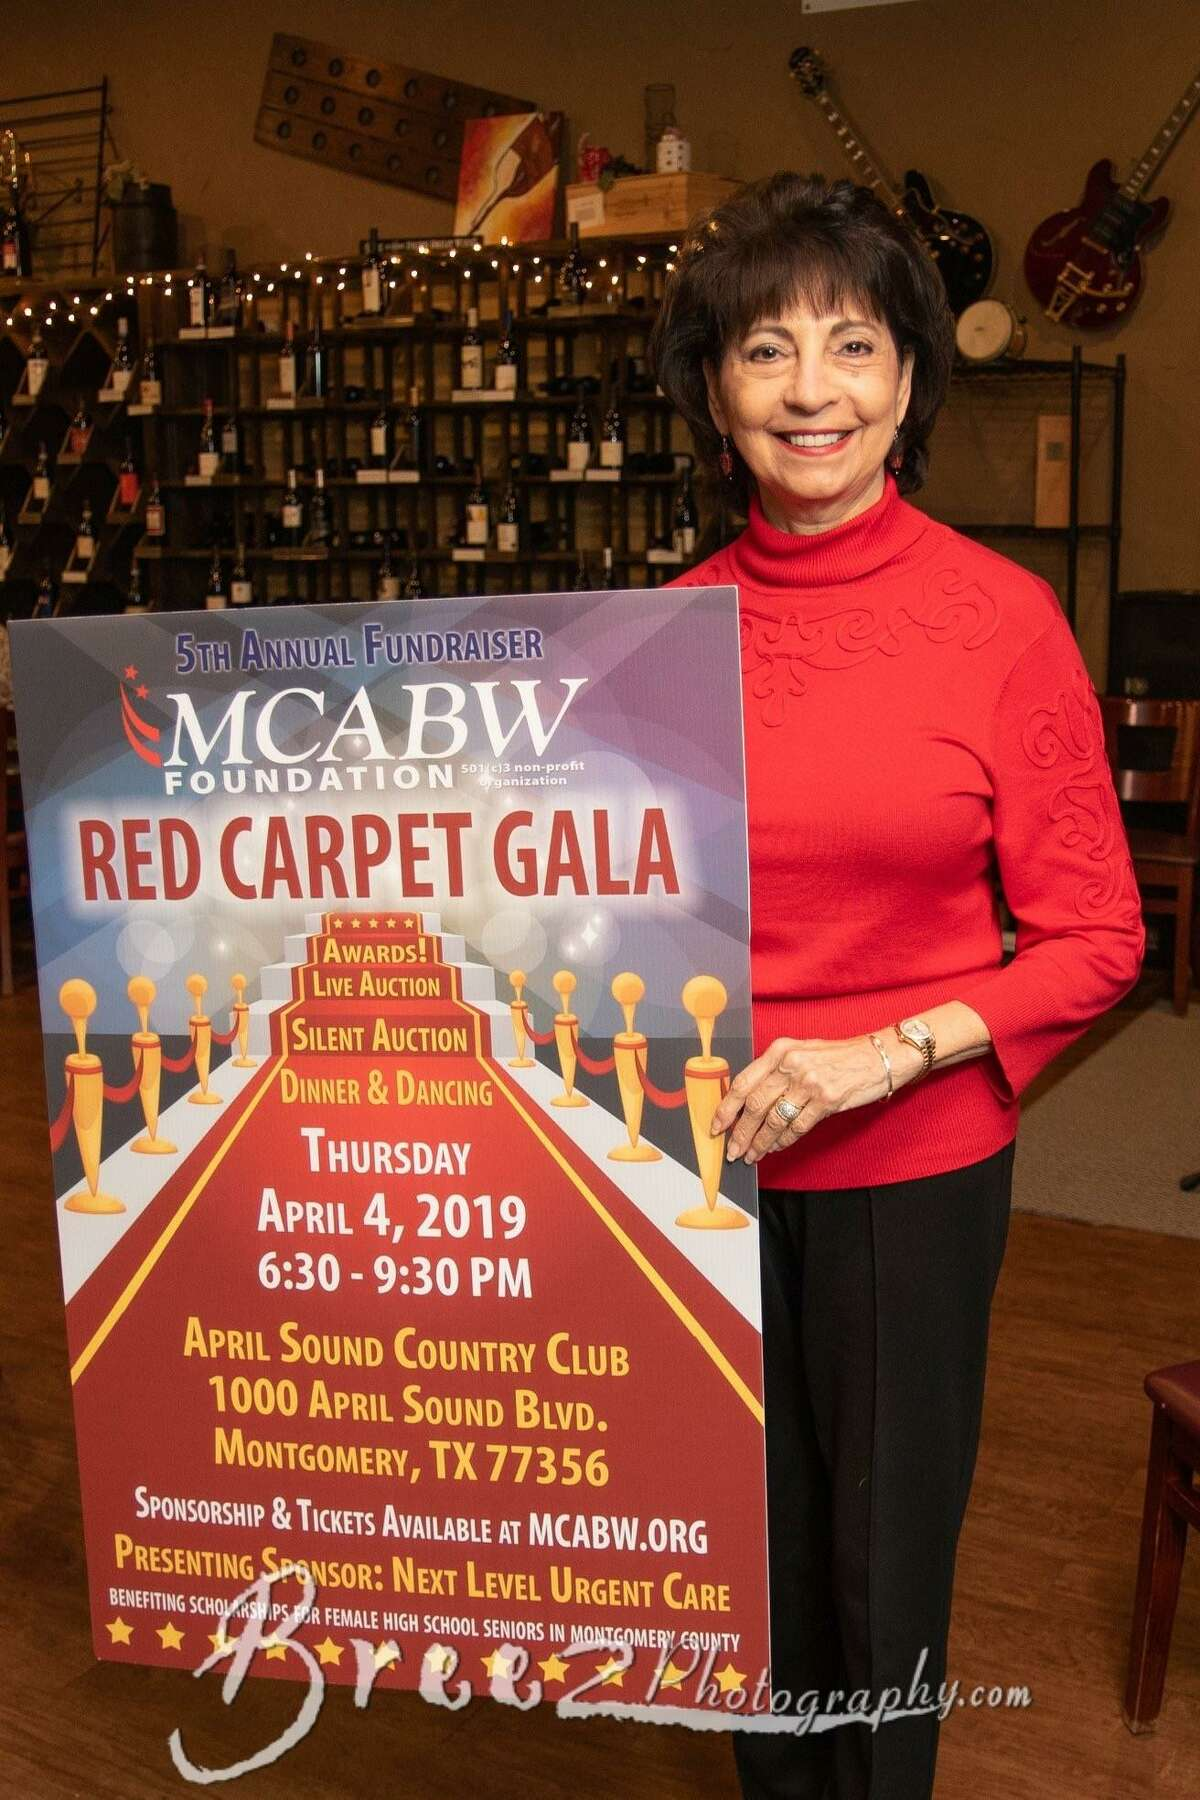 """The Montgomery County Association of Business Women (MCABW) invites you to the 5th annual MCABW Foundation Fundraiser """"The Red-Carpet Gala"""" benefiting scholarships for female high school seniors attending school in Montgomery County. It will be held on April 4, 2019 from 6:30 pm to 9:30 p.m. at the April Sound Country Club, 1000 April Sound Blvd, Montgomery, TX 77356.Pictured is Carol Gooch, theExecutive Director and Founder of MCABW."""